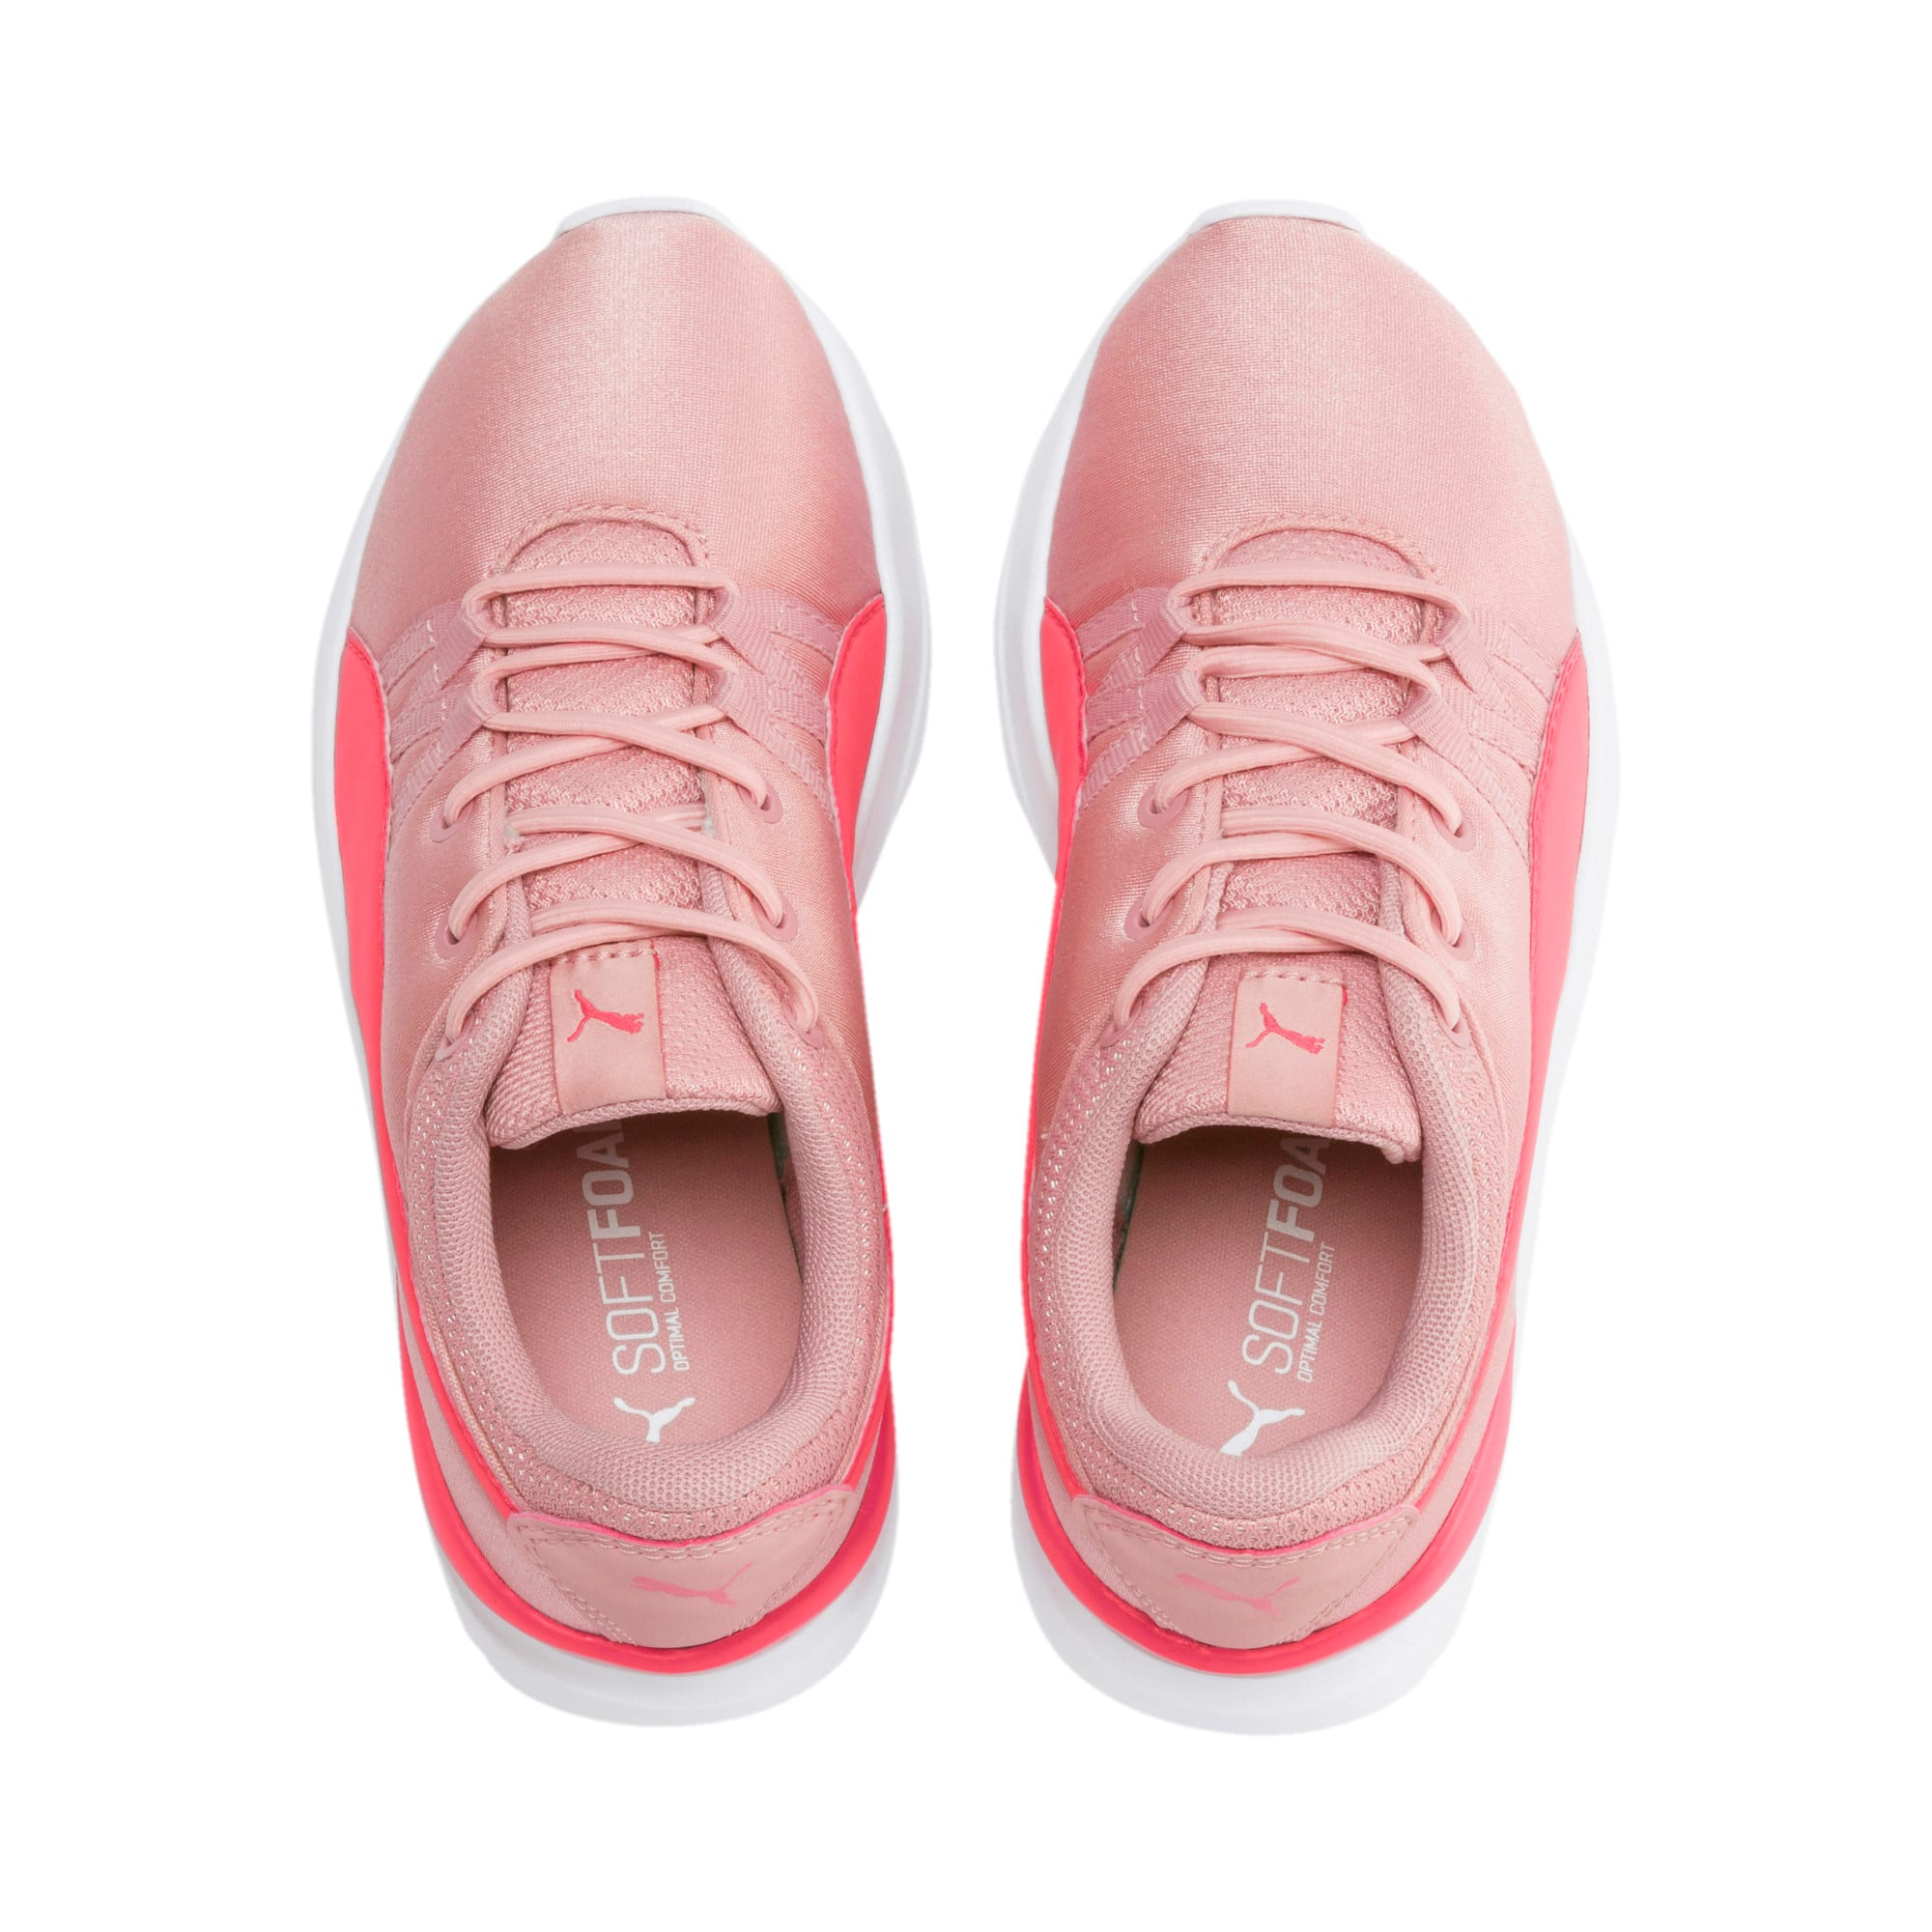 Thumbnail 2 of Adela Girls' Trainers, Bridal Rose-Calypso Coral, medium-IND